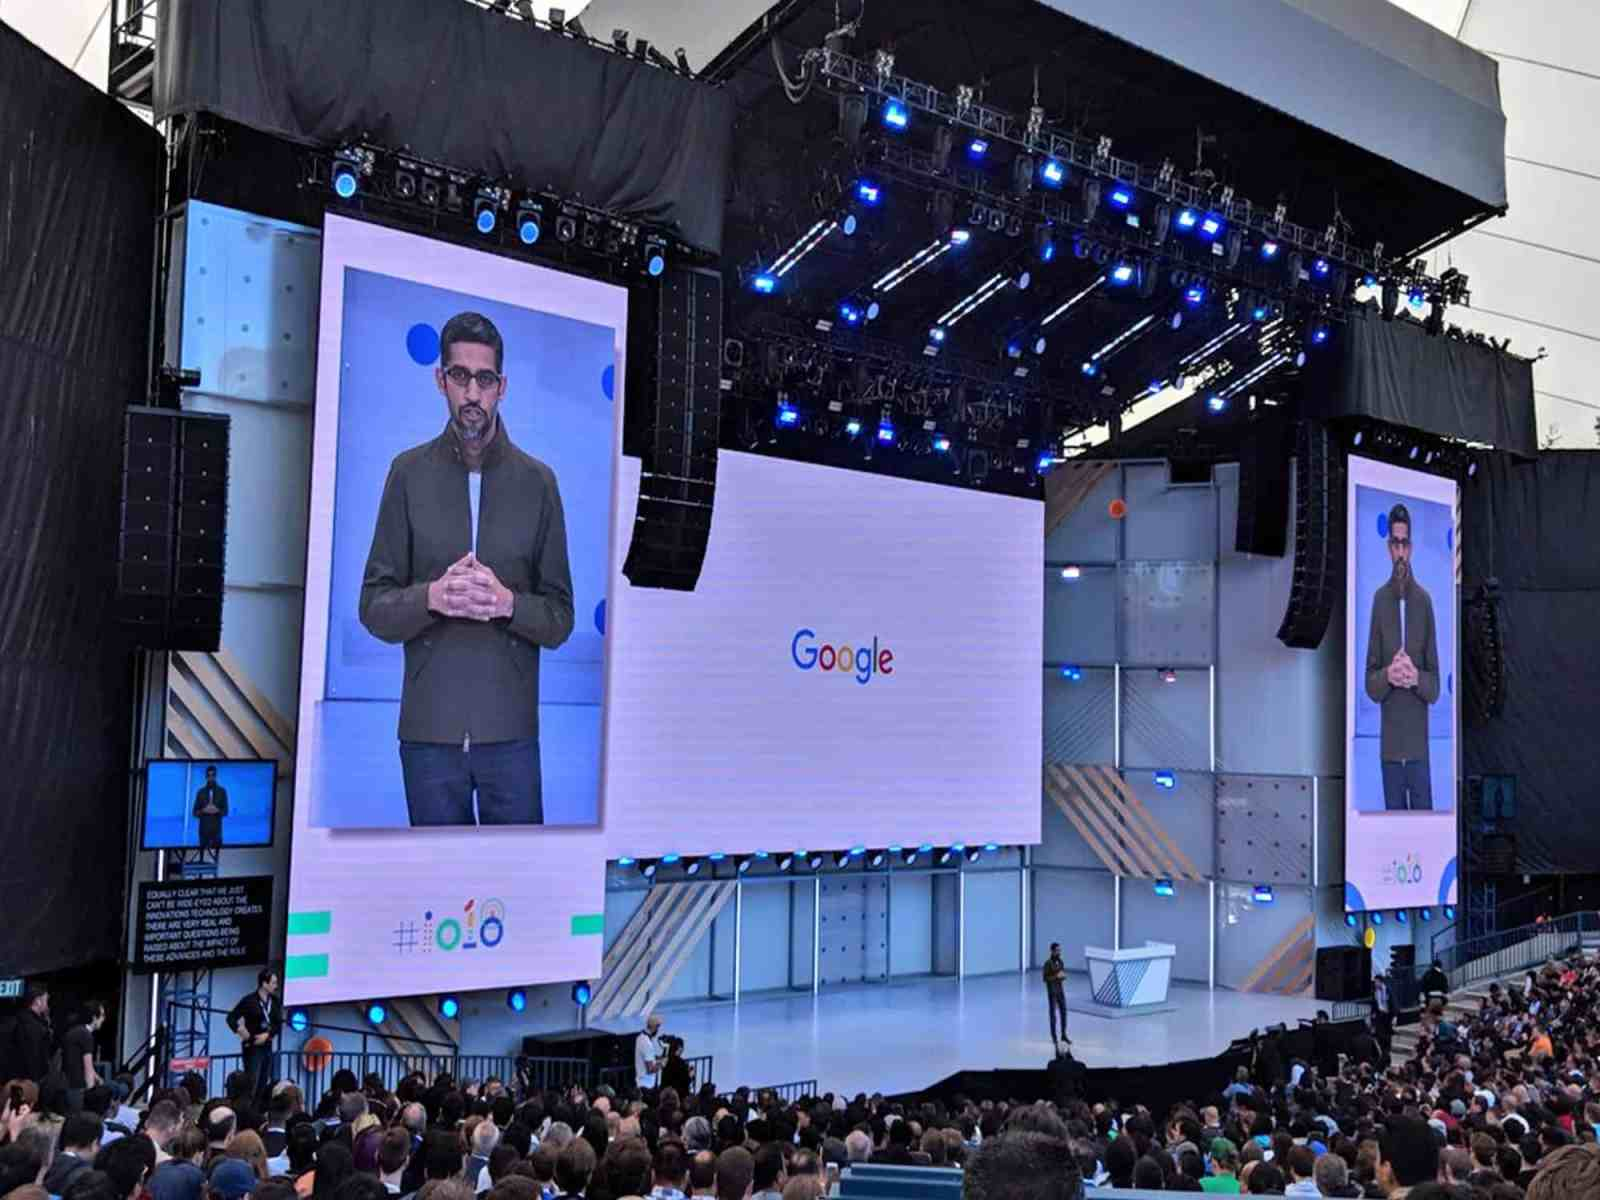 Google unveiled their new Google Duplex AI technology at their annual I/O event and it is eerily realistic. The goal is for Google Duplex to be able to complete everyday tasks for you such as calling to schedule a hair appointment. But the question is raised, how far is too far with AI?